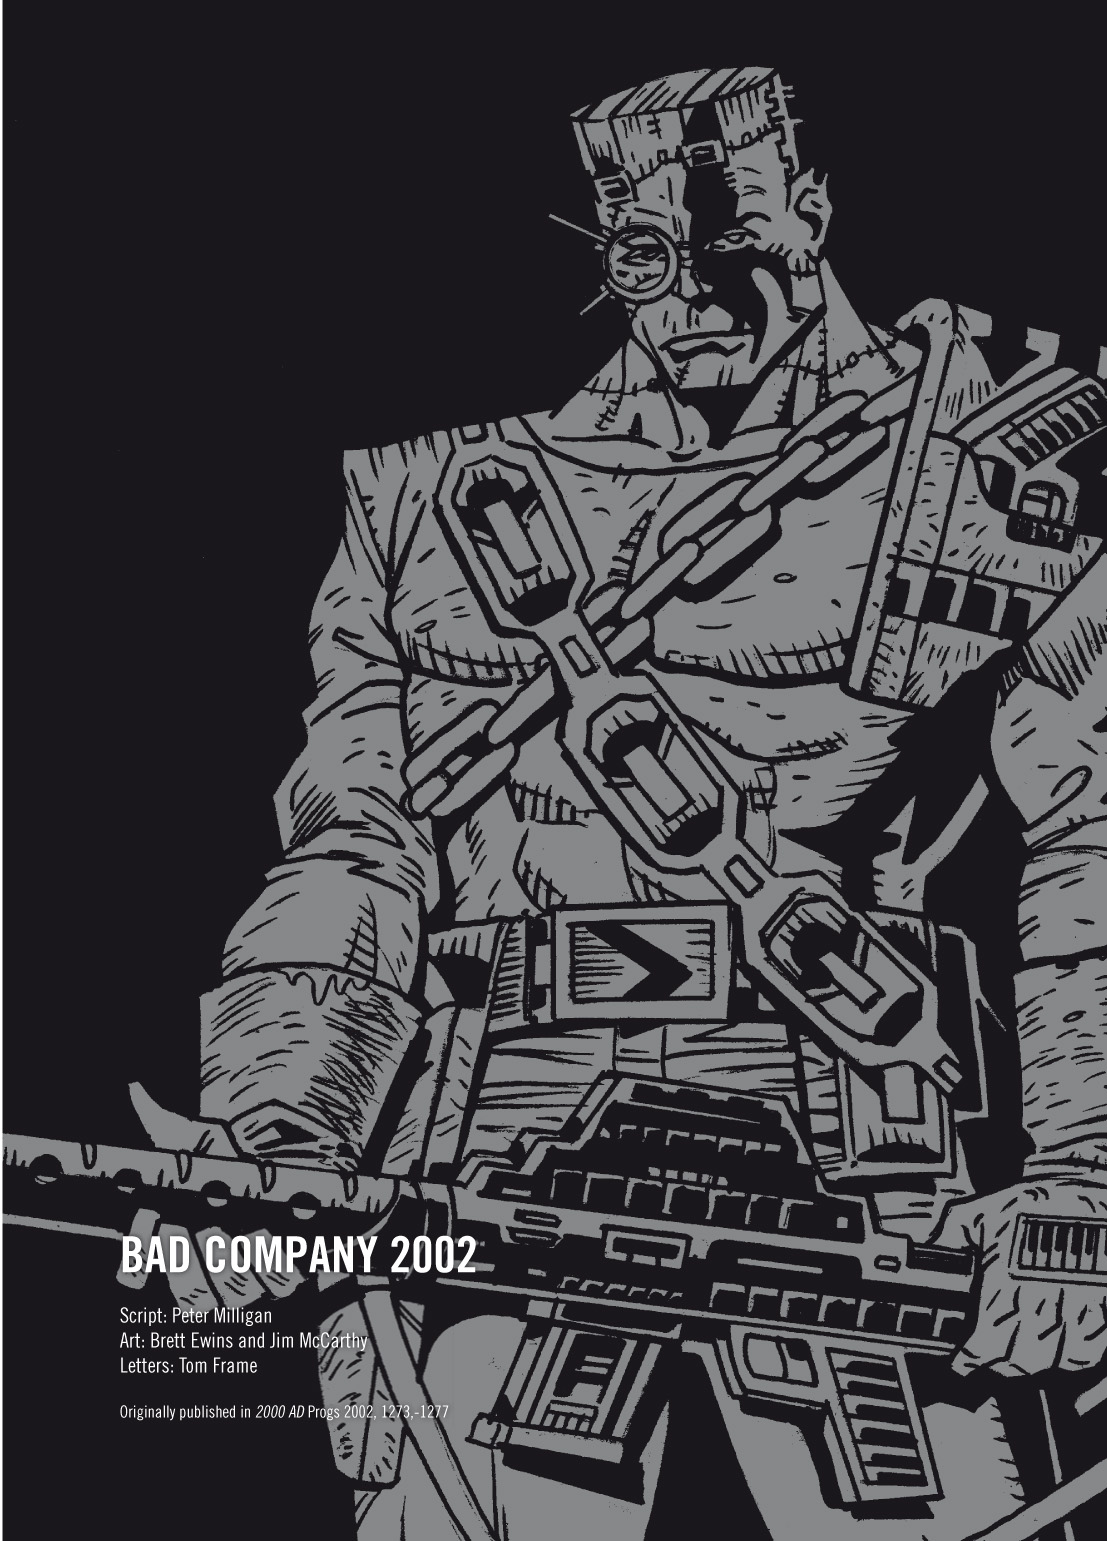 Read online The Complete Bad Company comic -  Issue # TPB - 329